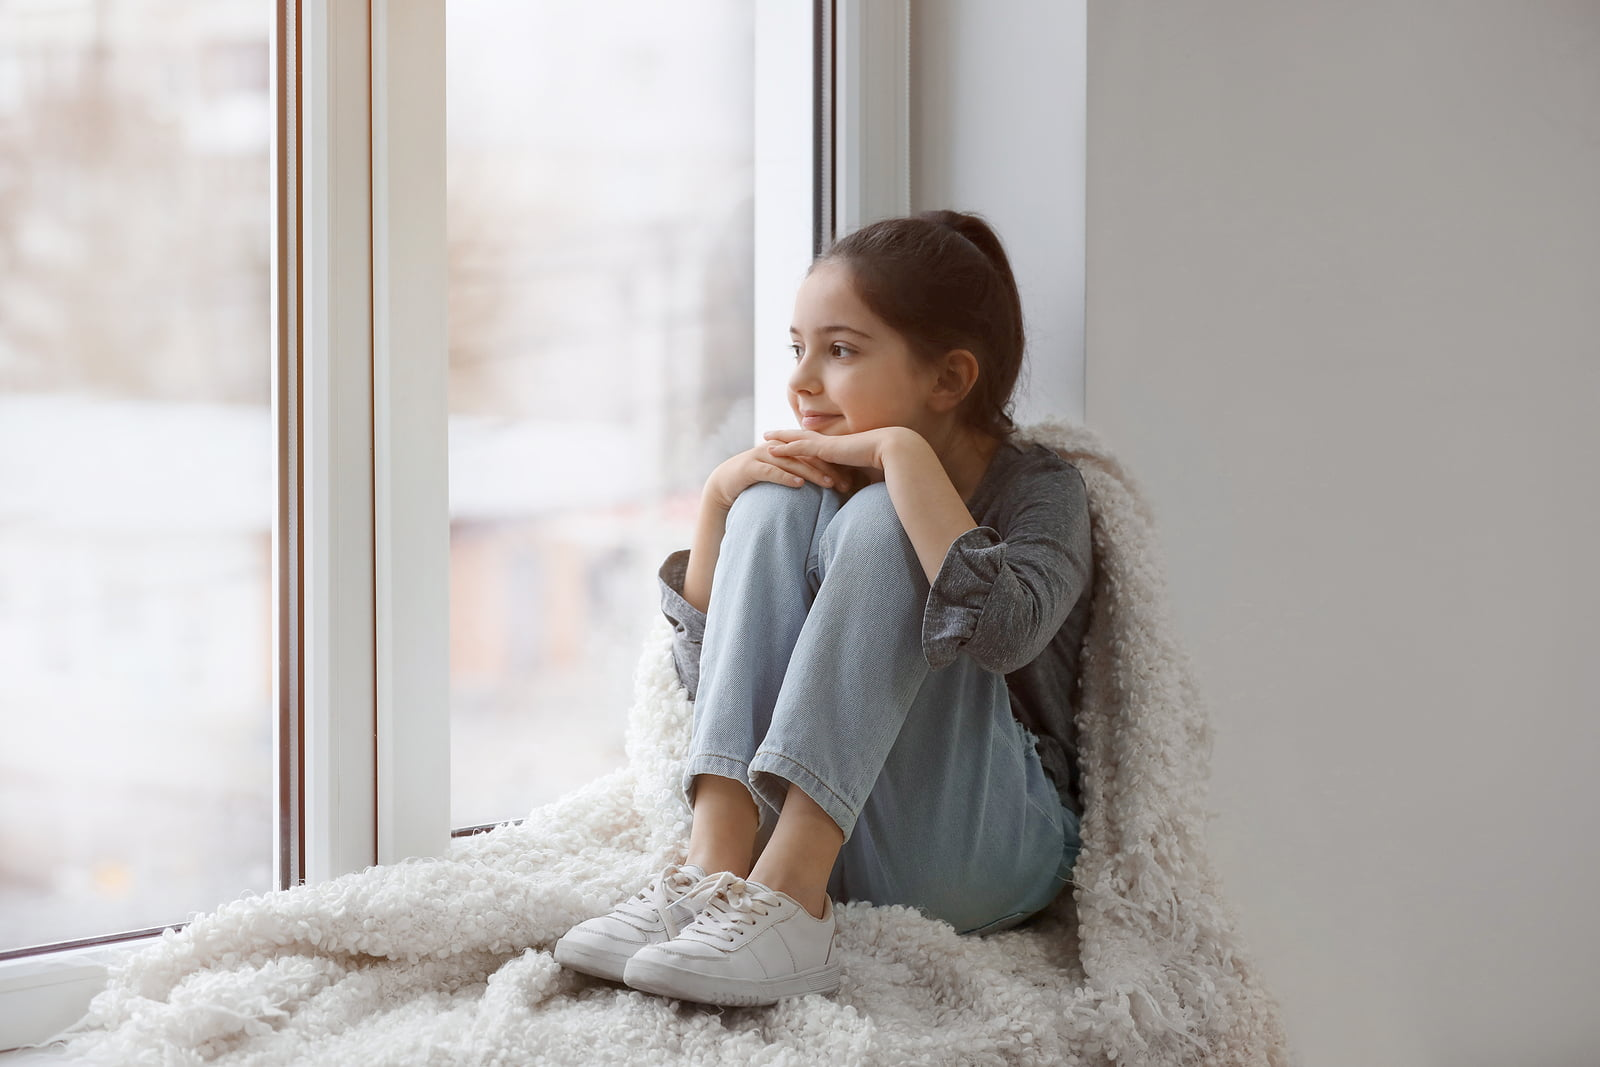 A girl snuggled up in a blanket by a window, staring out at the frosty weather.